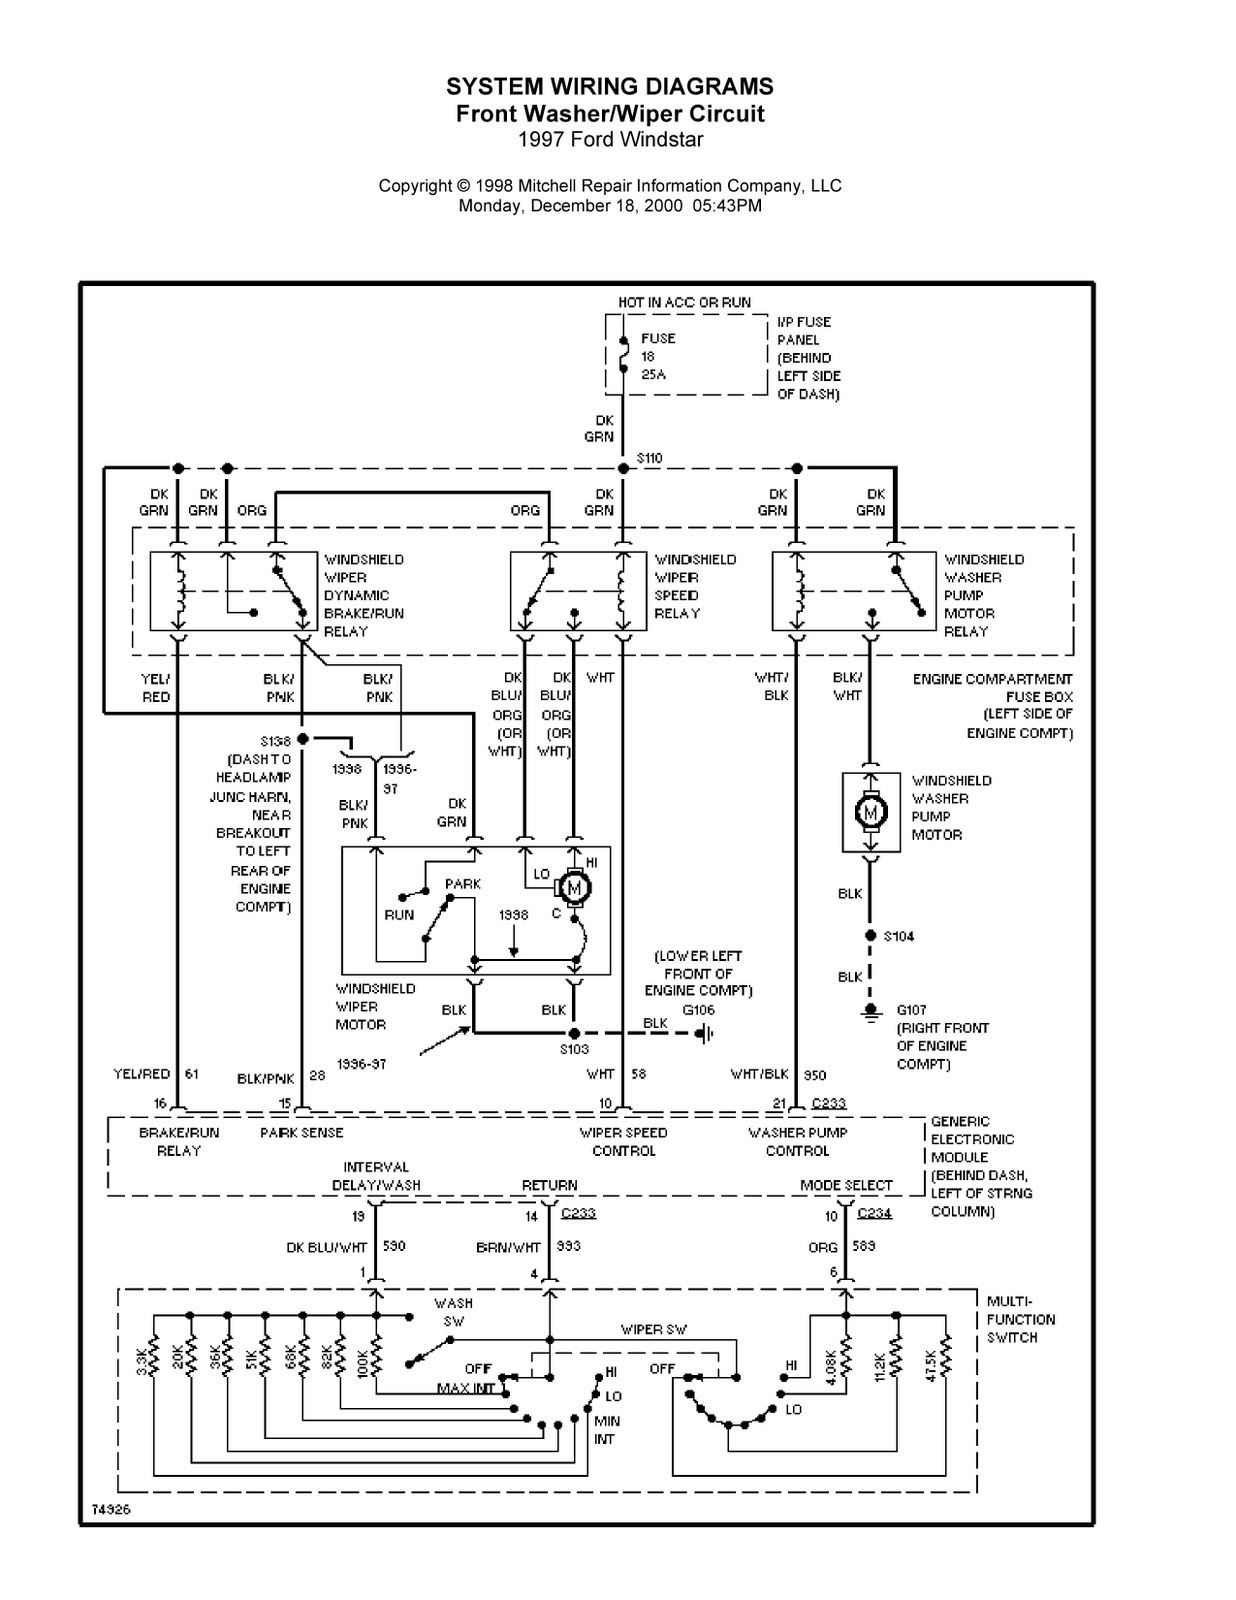 0051 1997 ford windstar complete system wiring diagrams wiring wiring diagram for 1998 vw beetle at n-0.co